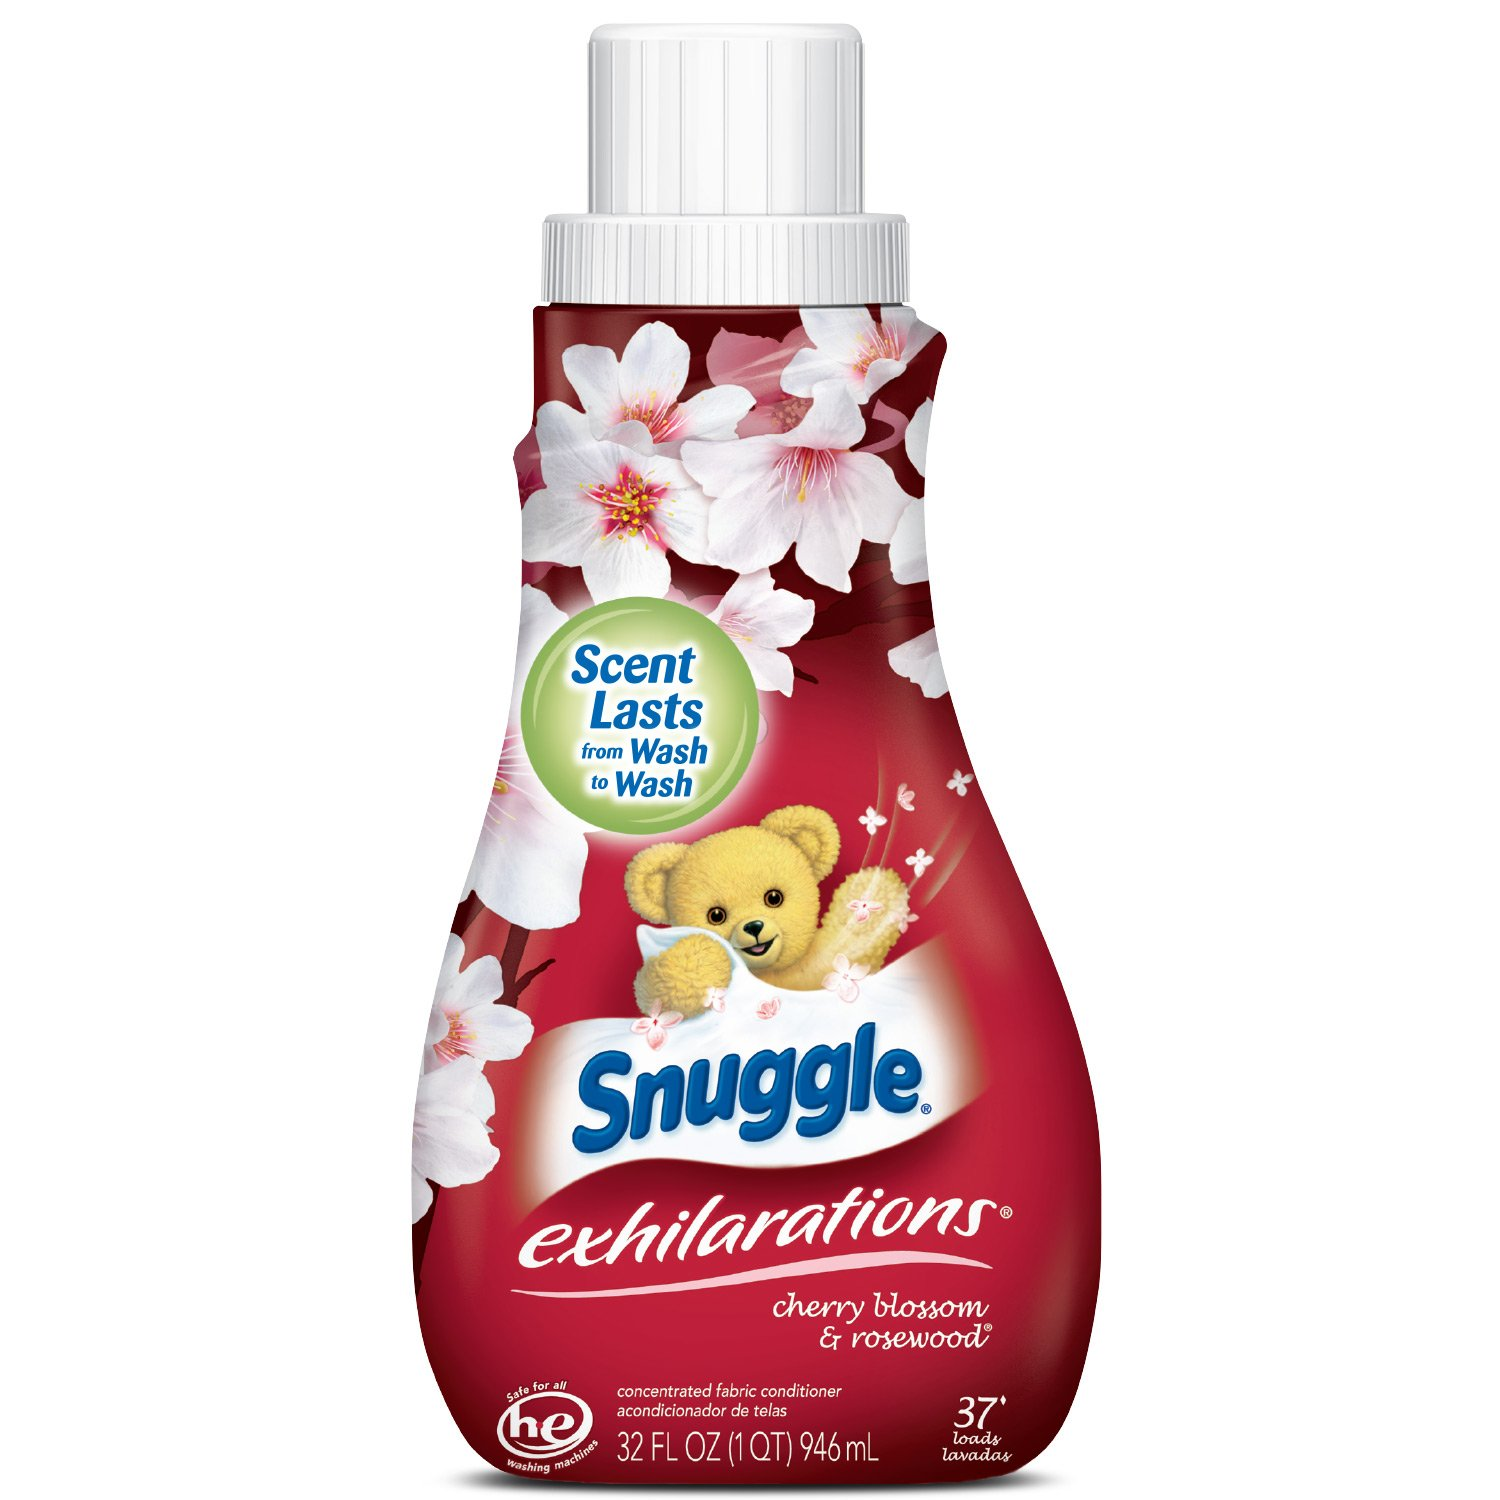 Amazon.com: Snuggle Exhilarations Liquid Fabric Softener, Cherry Blossom & Rosewood, 32 Fluid Ounces: Health & Personal Care